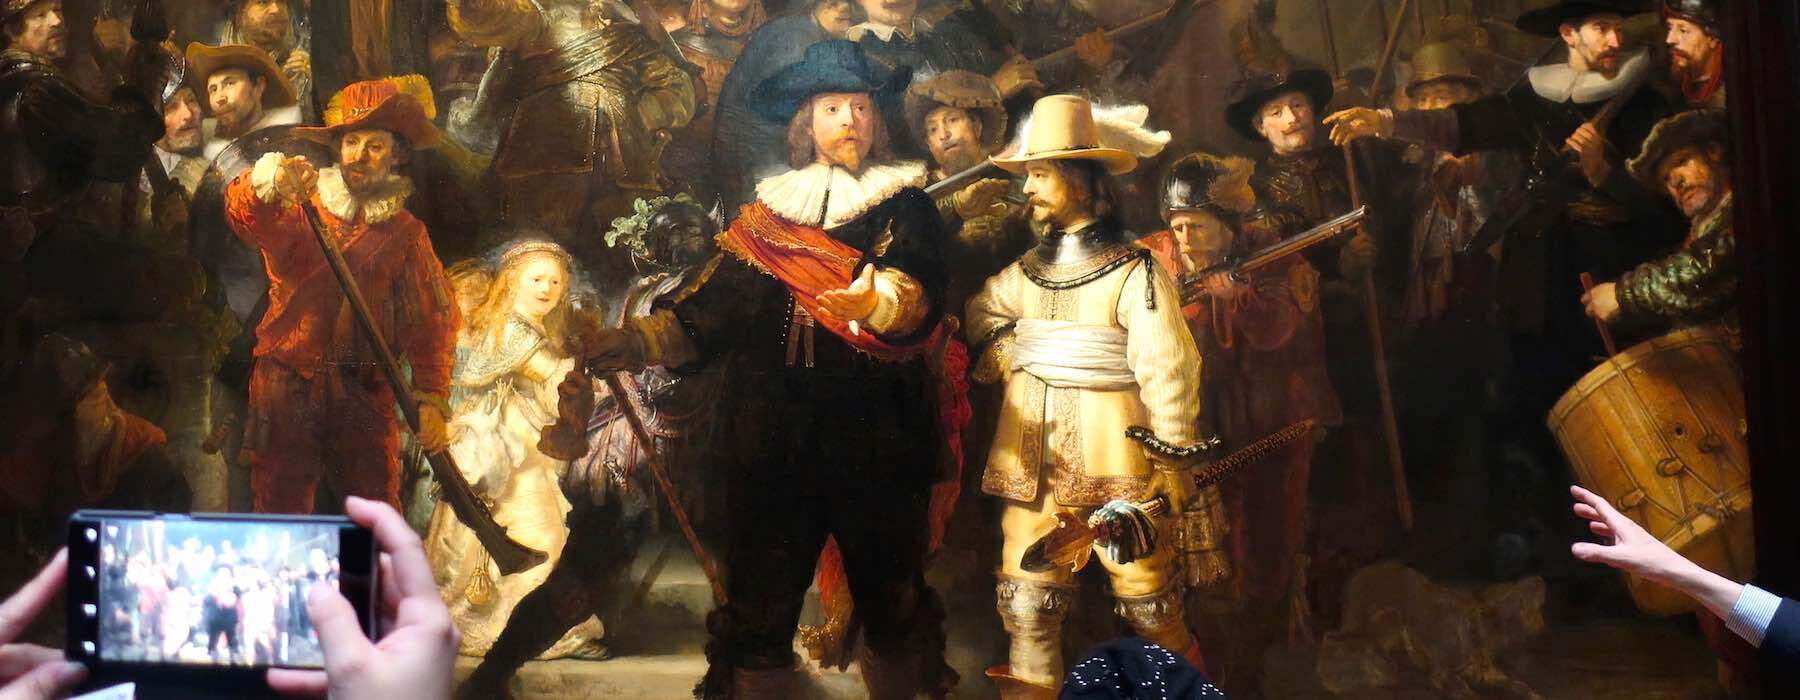 Rembrandt Paintings Nightwatch